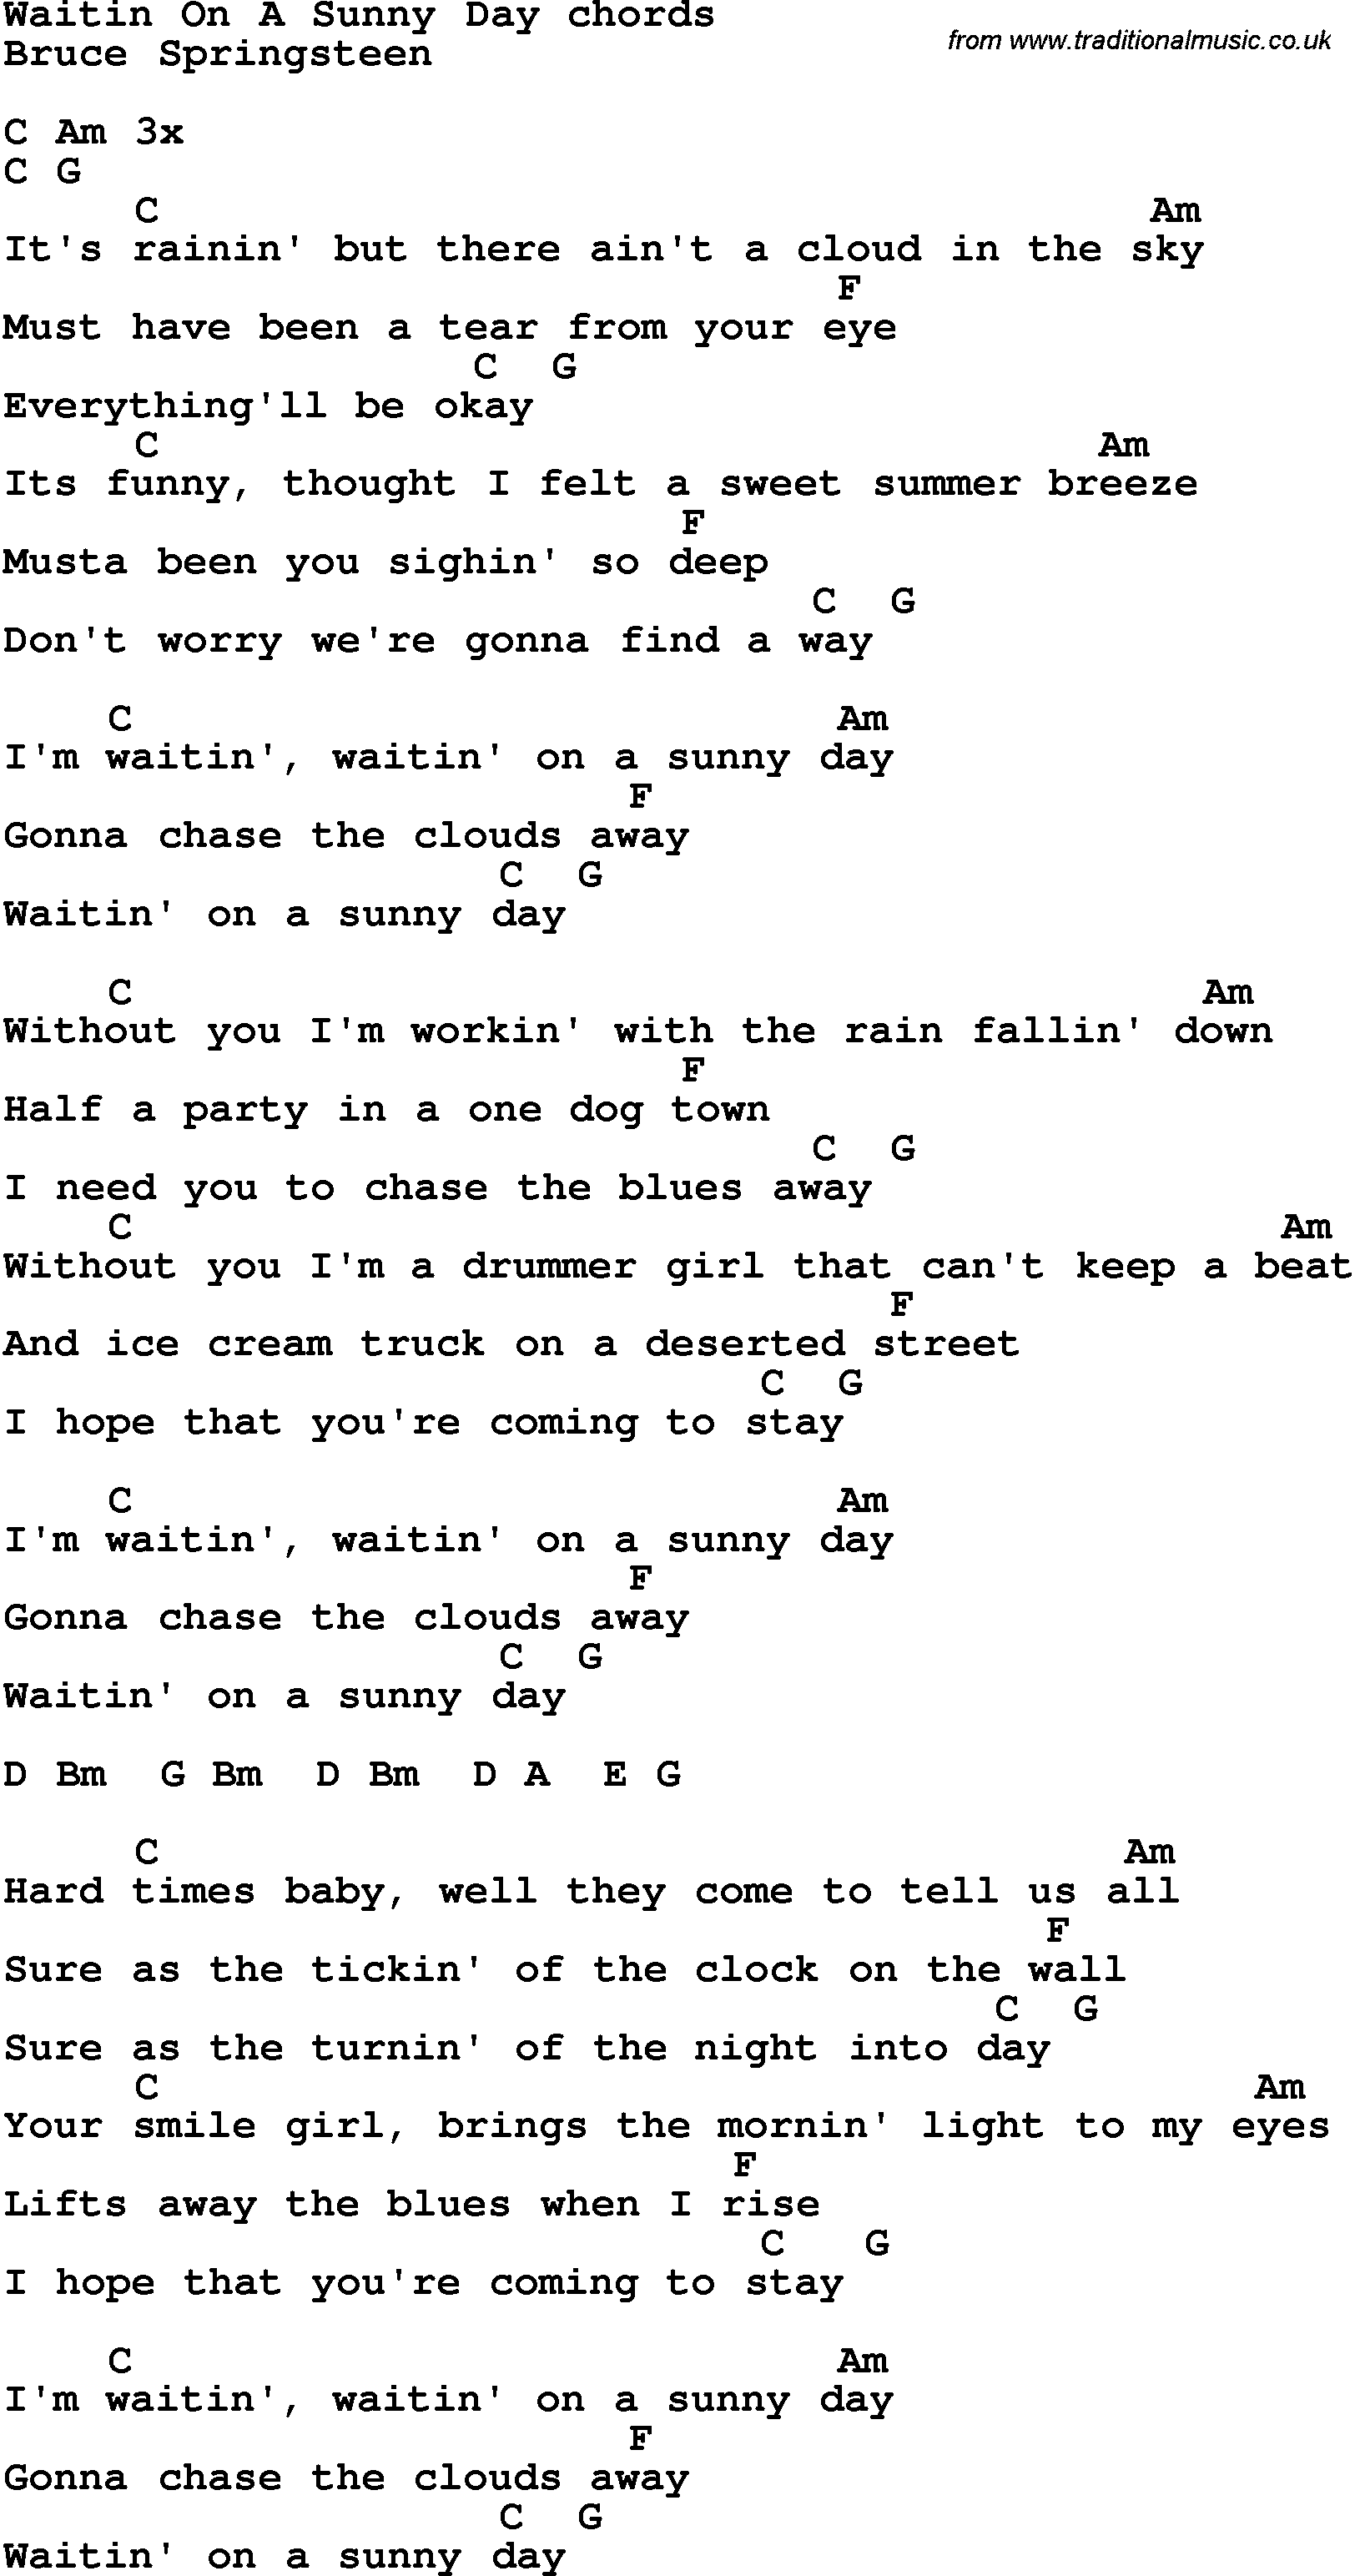 Song Lyrics With Guitar Chords For Waitin On A Sunny Day